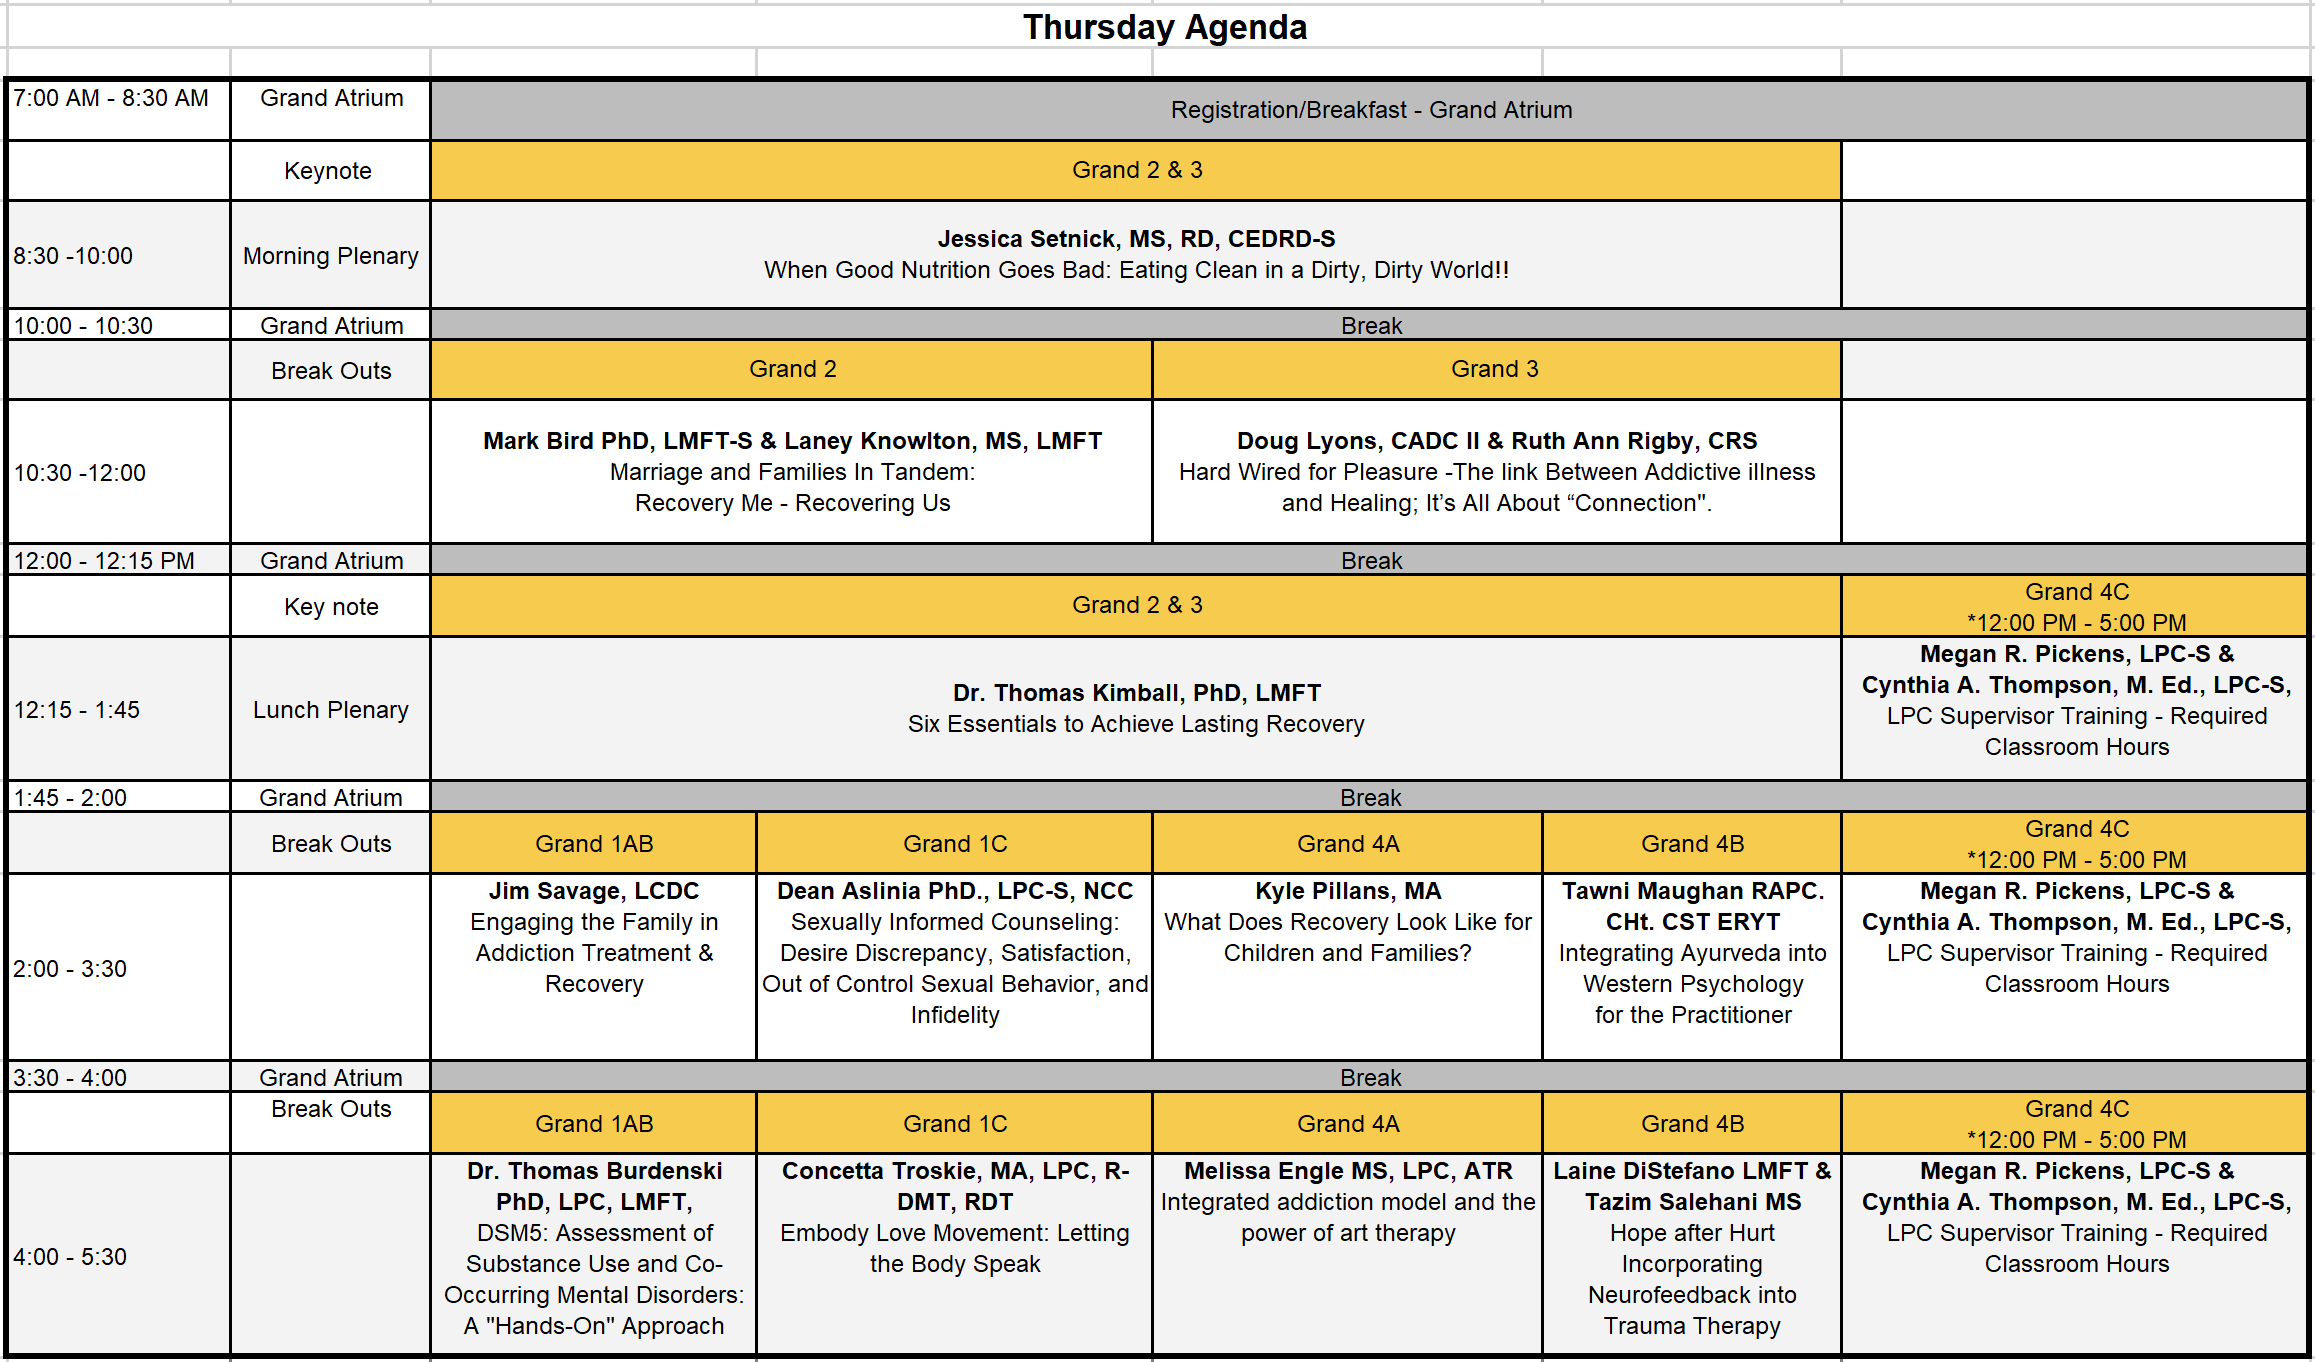 Thursday Agenda 2019.PNG